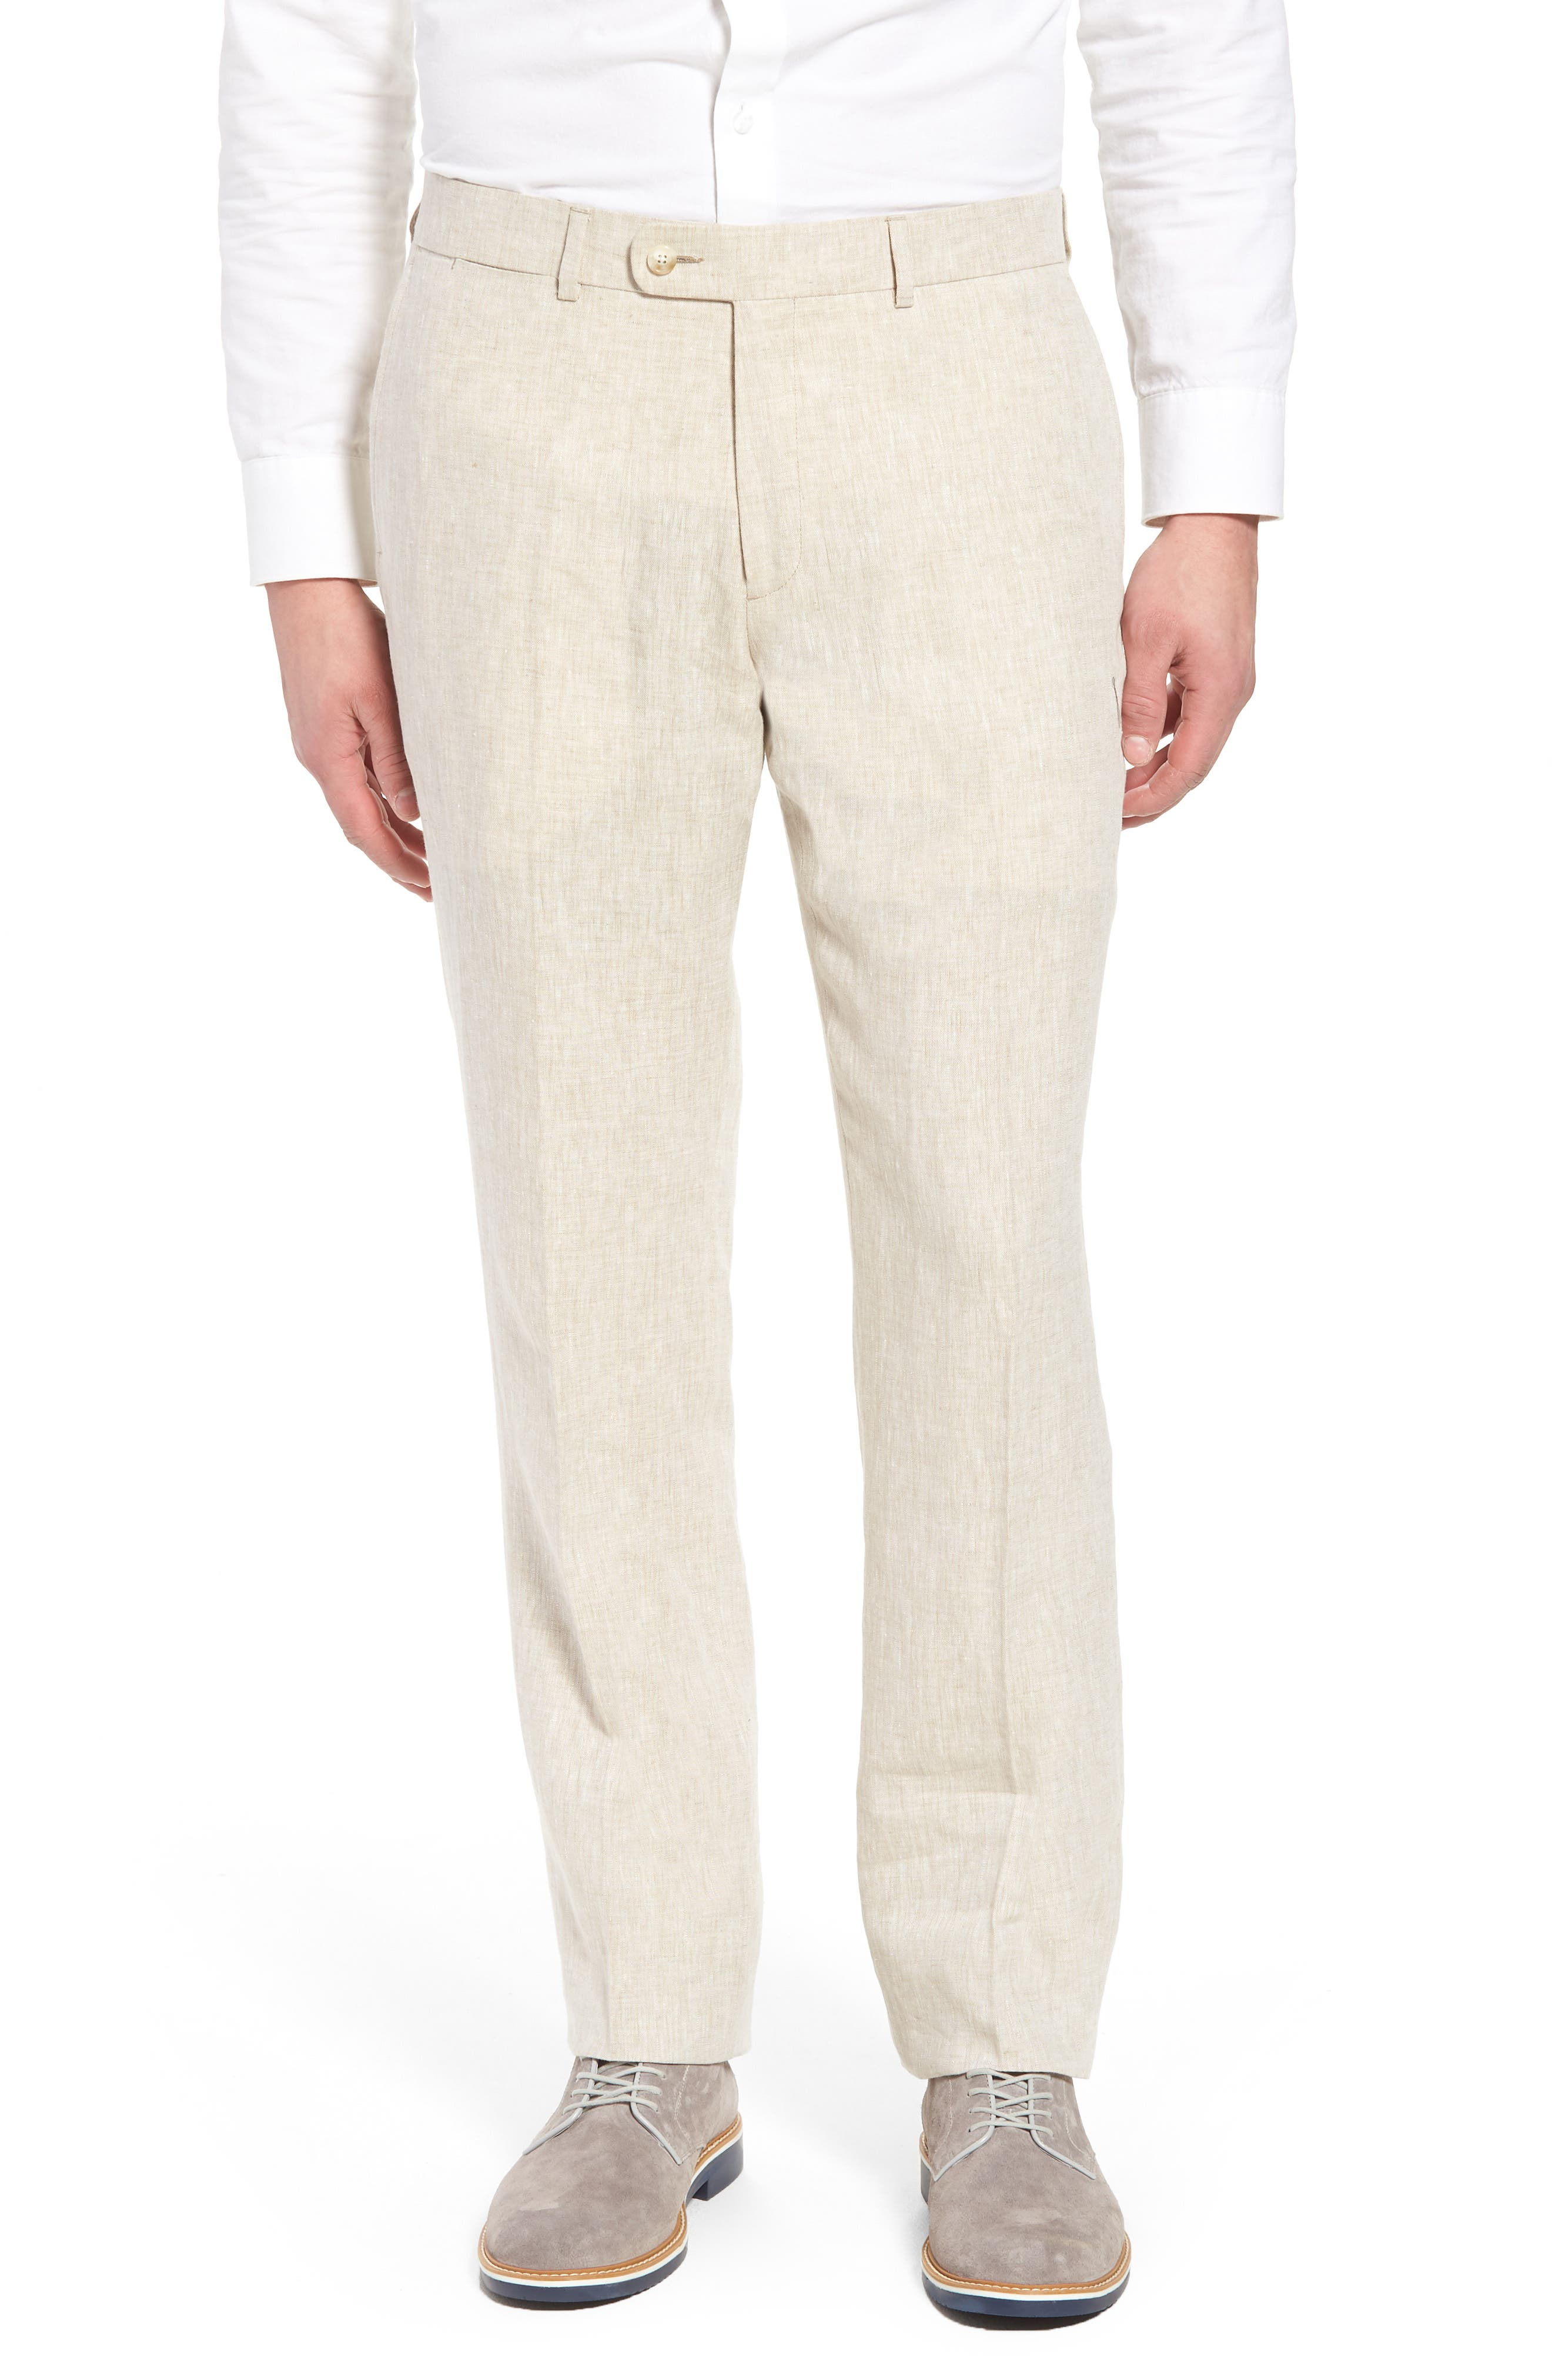 Andrew AIM Flat Front Linen Trousers,                         Main,                         color, Natural